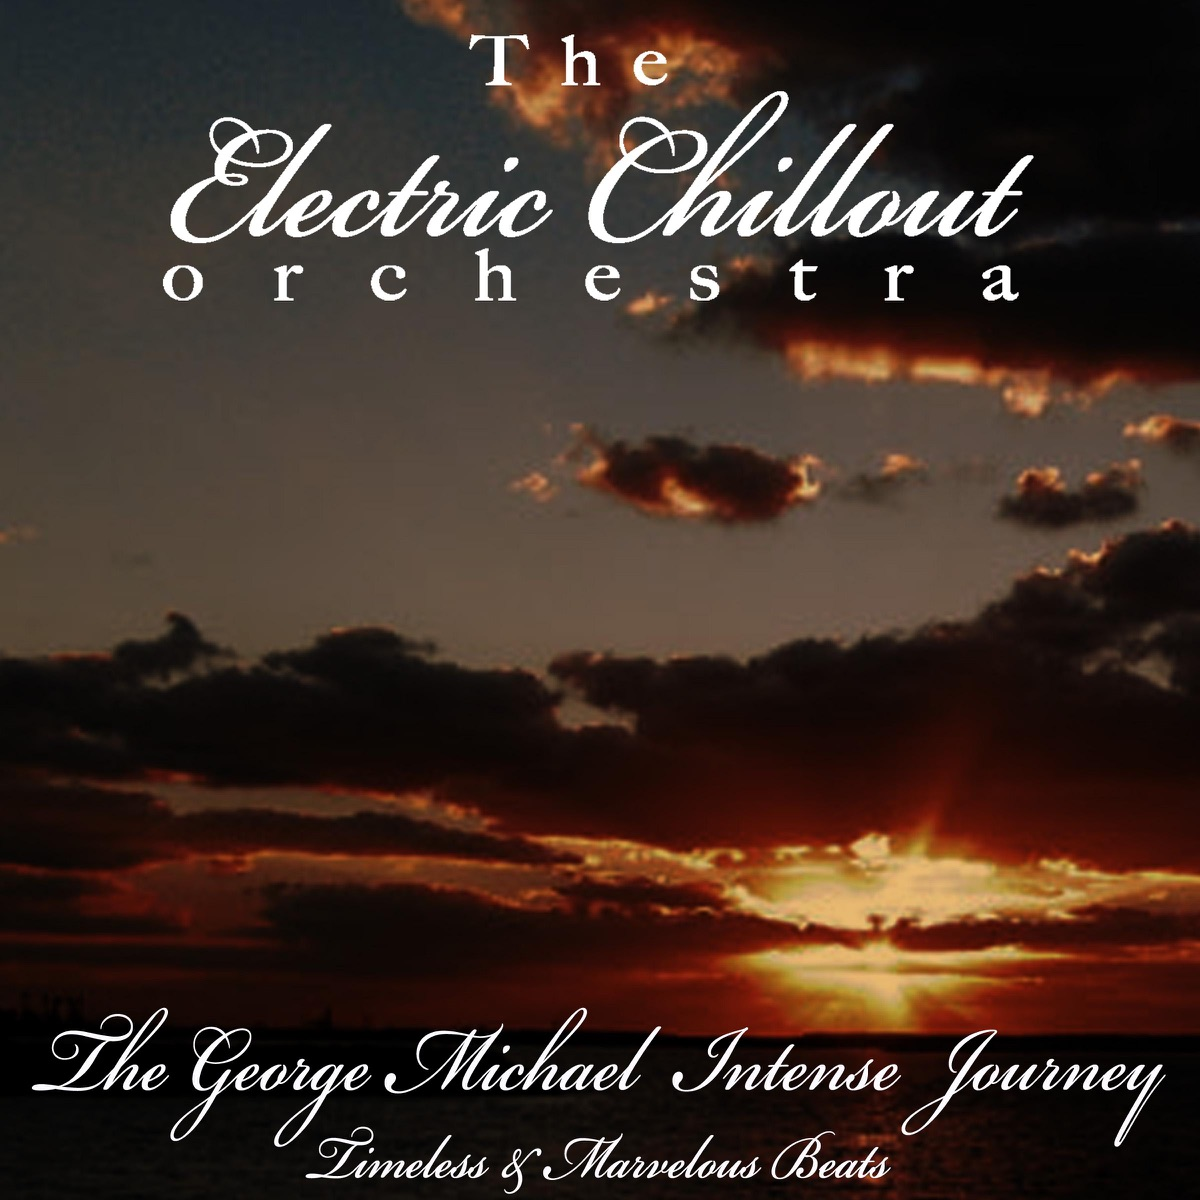 The George Michael Intense Journey The Electric Chillout Orchestra CD cover